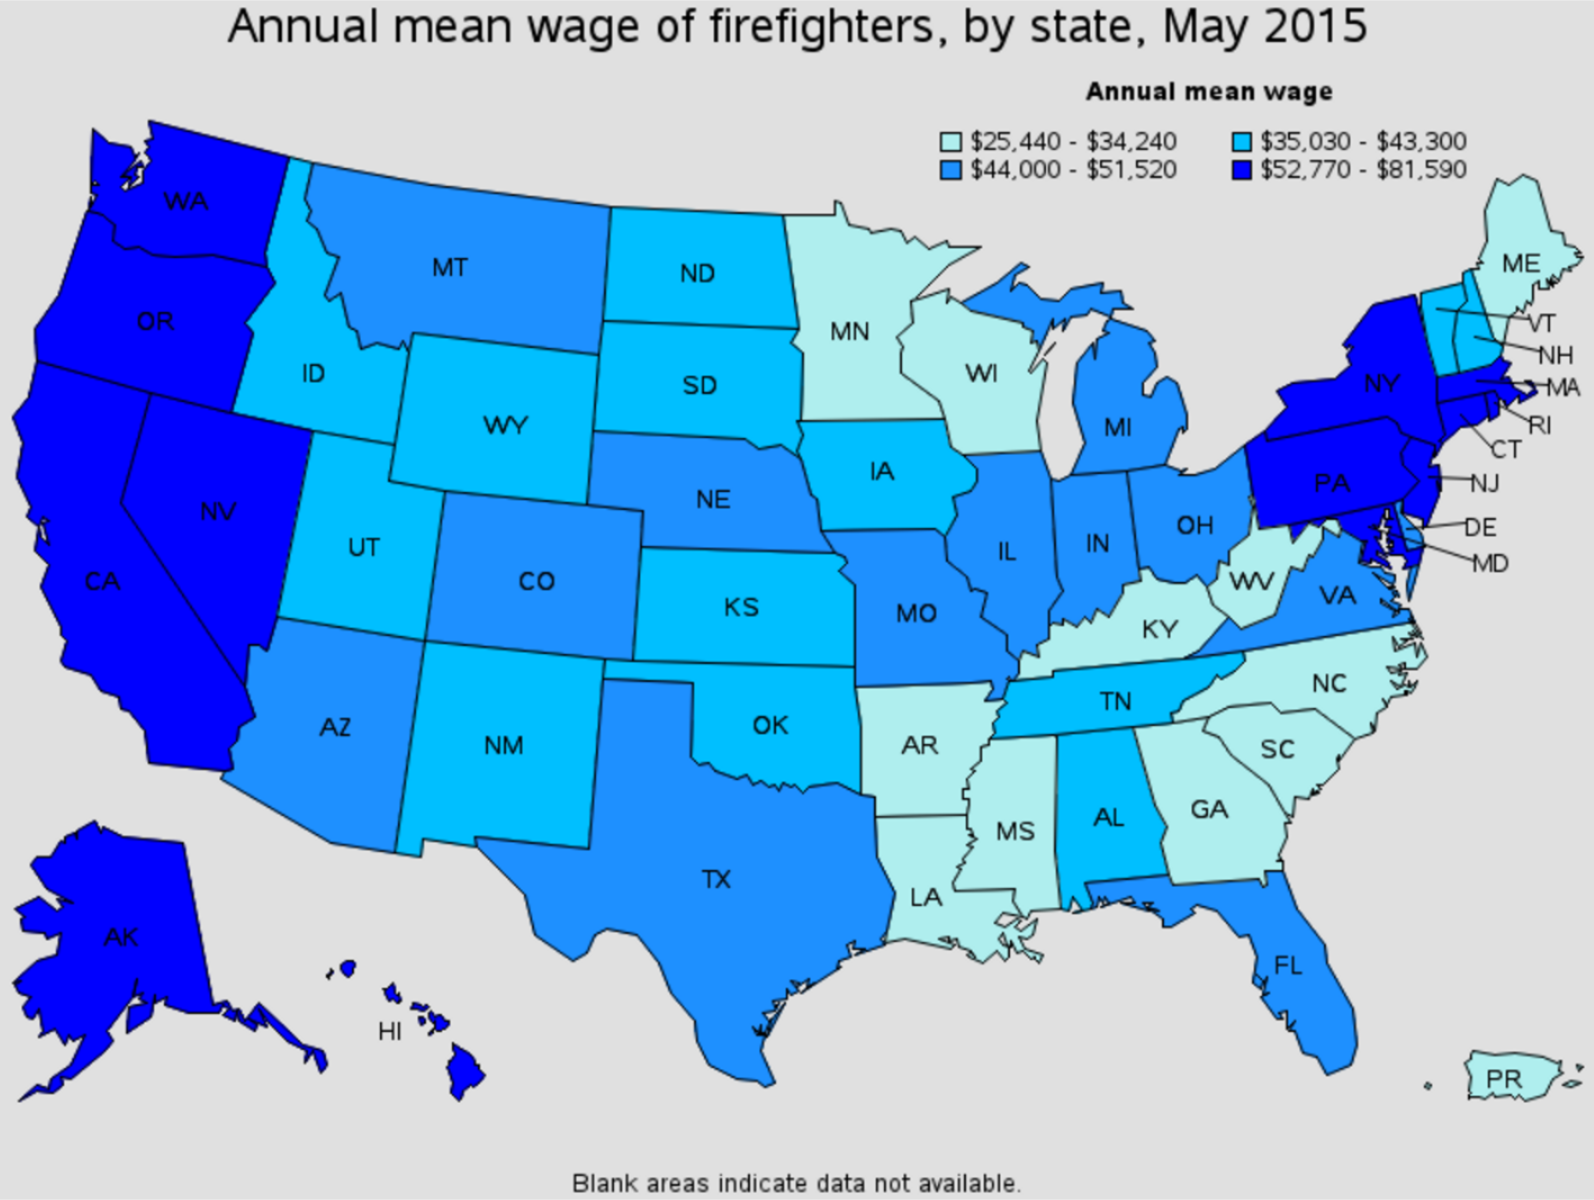 firefighter average salary by state Windsor Missouri